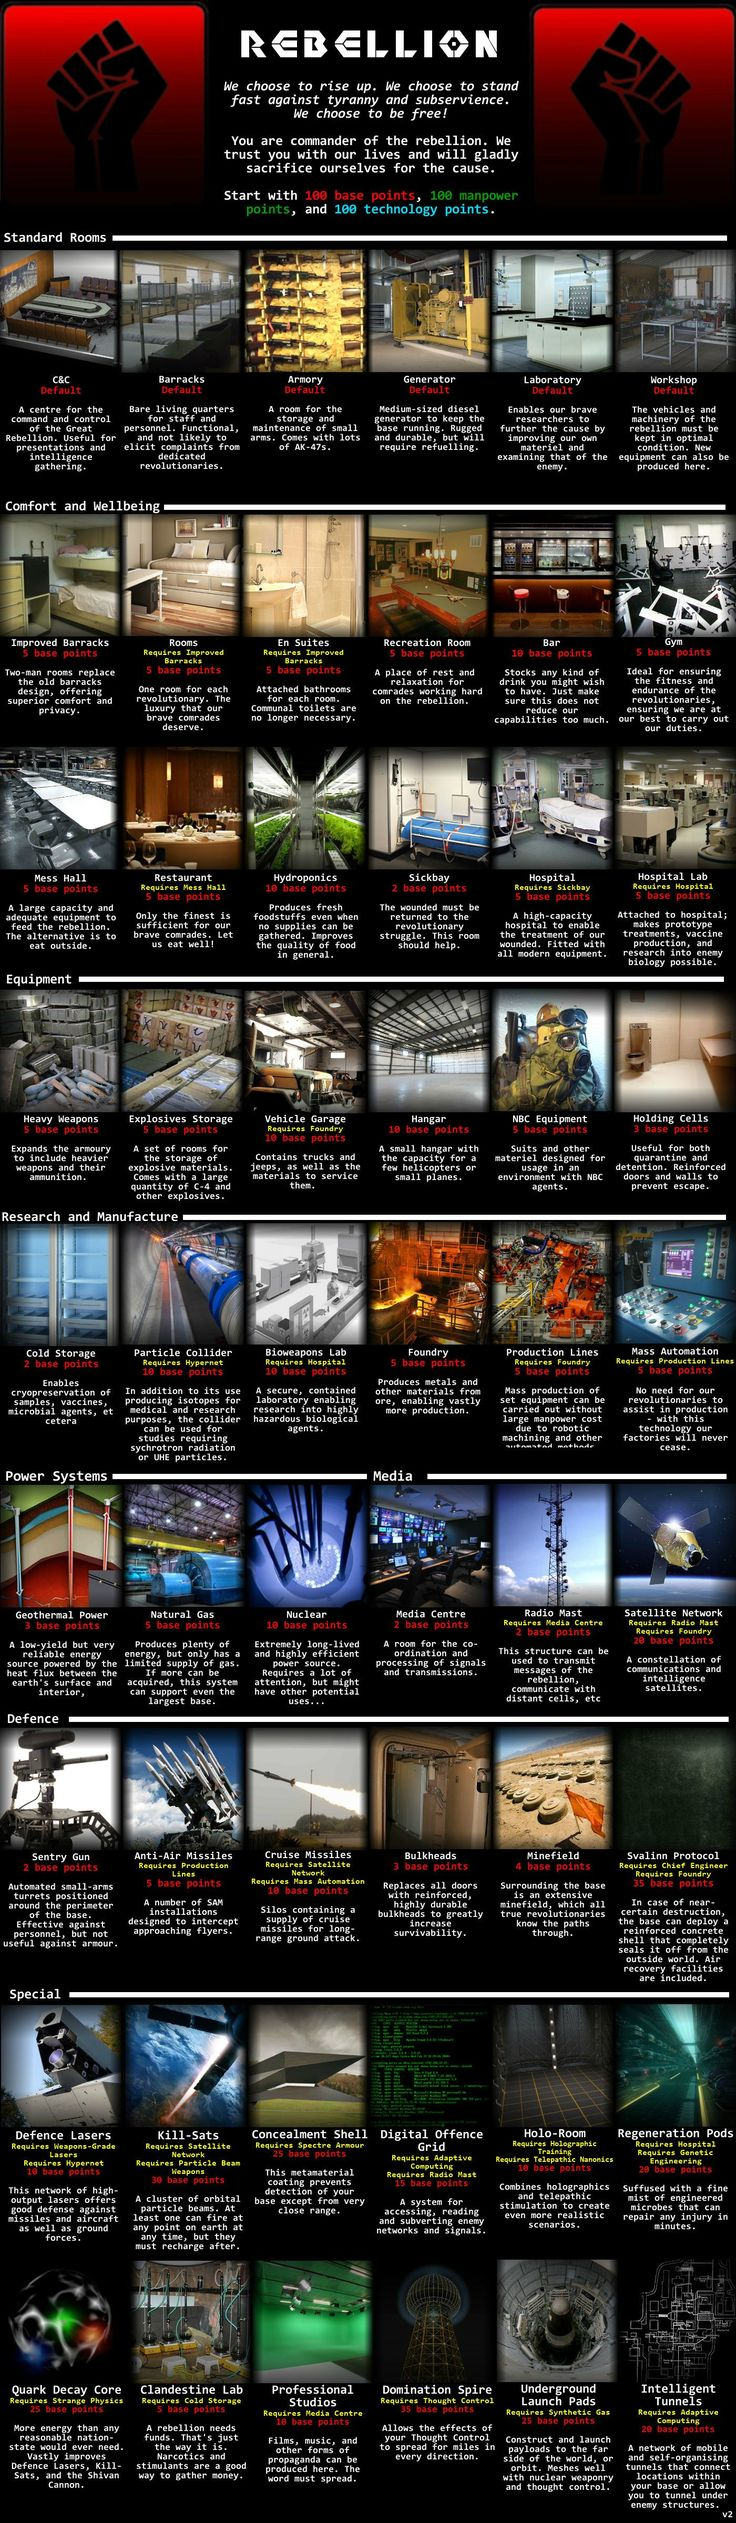 Rebellion CYOA. My choices: Improved Barracks, Recreation Room, Mess Hall, Sickbay, Cold Storage, Particle Collider, Foundry, Natural Gas, Media Centre, Radio Mast, Satellite Network, Sentry Gun, Defence Lasers, Kill-Sats